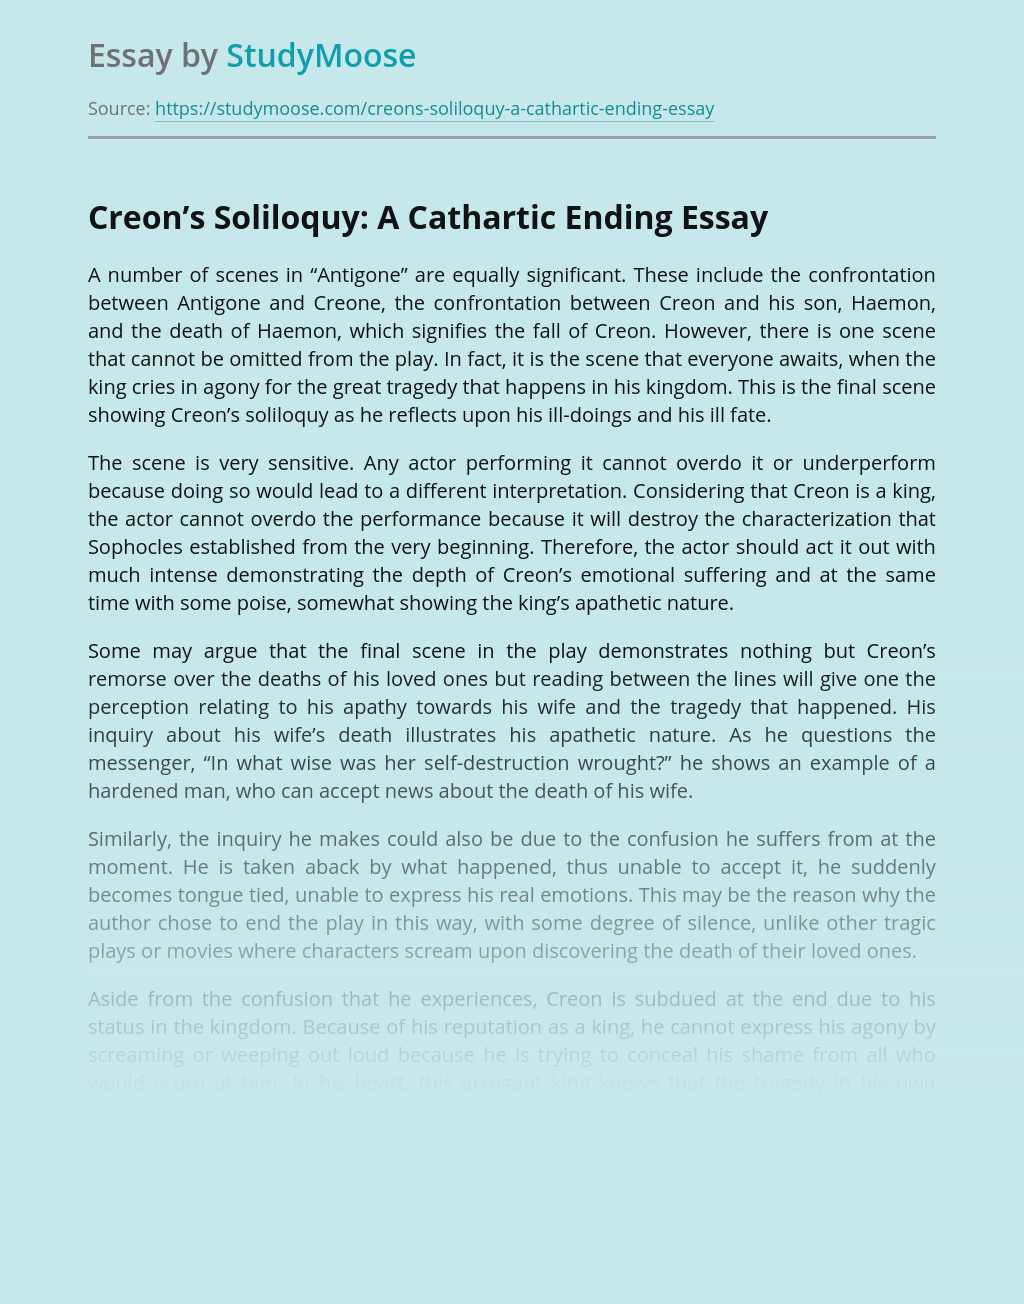 Creon's Soliloquy: A Cathartic Ending